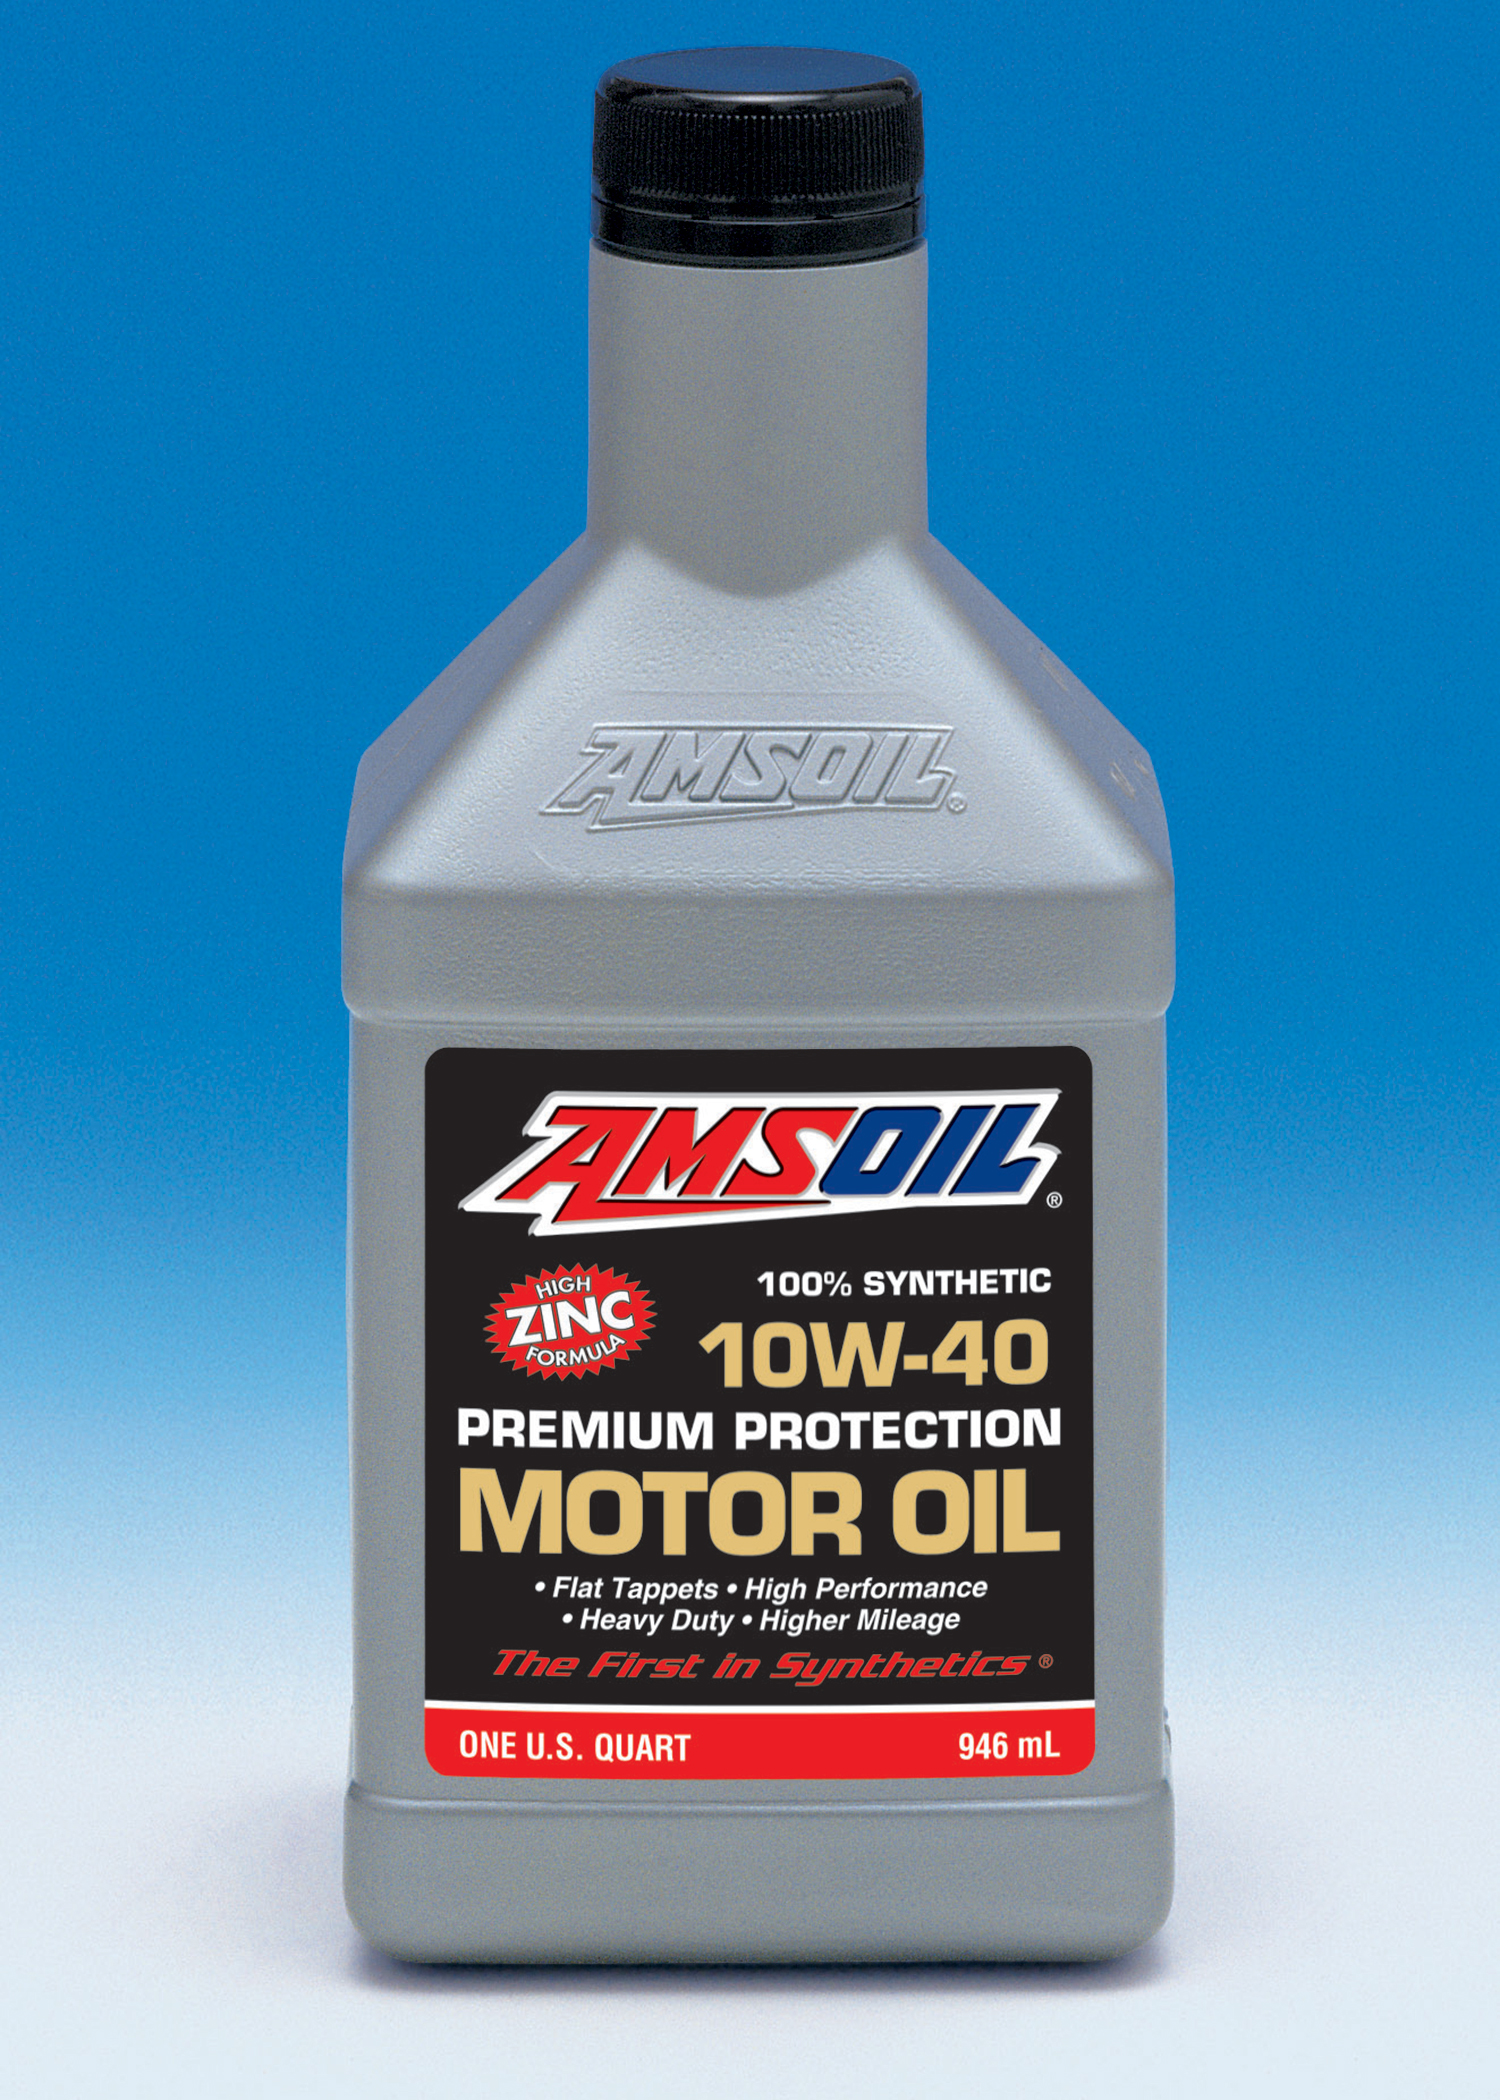 AMSOIL INC. Synthetic 10W-40 Premium Protection Motor Oil has a high zinc content is recommended for extended drain intervals in unmodified, mechanically sound vehicles.